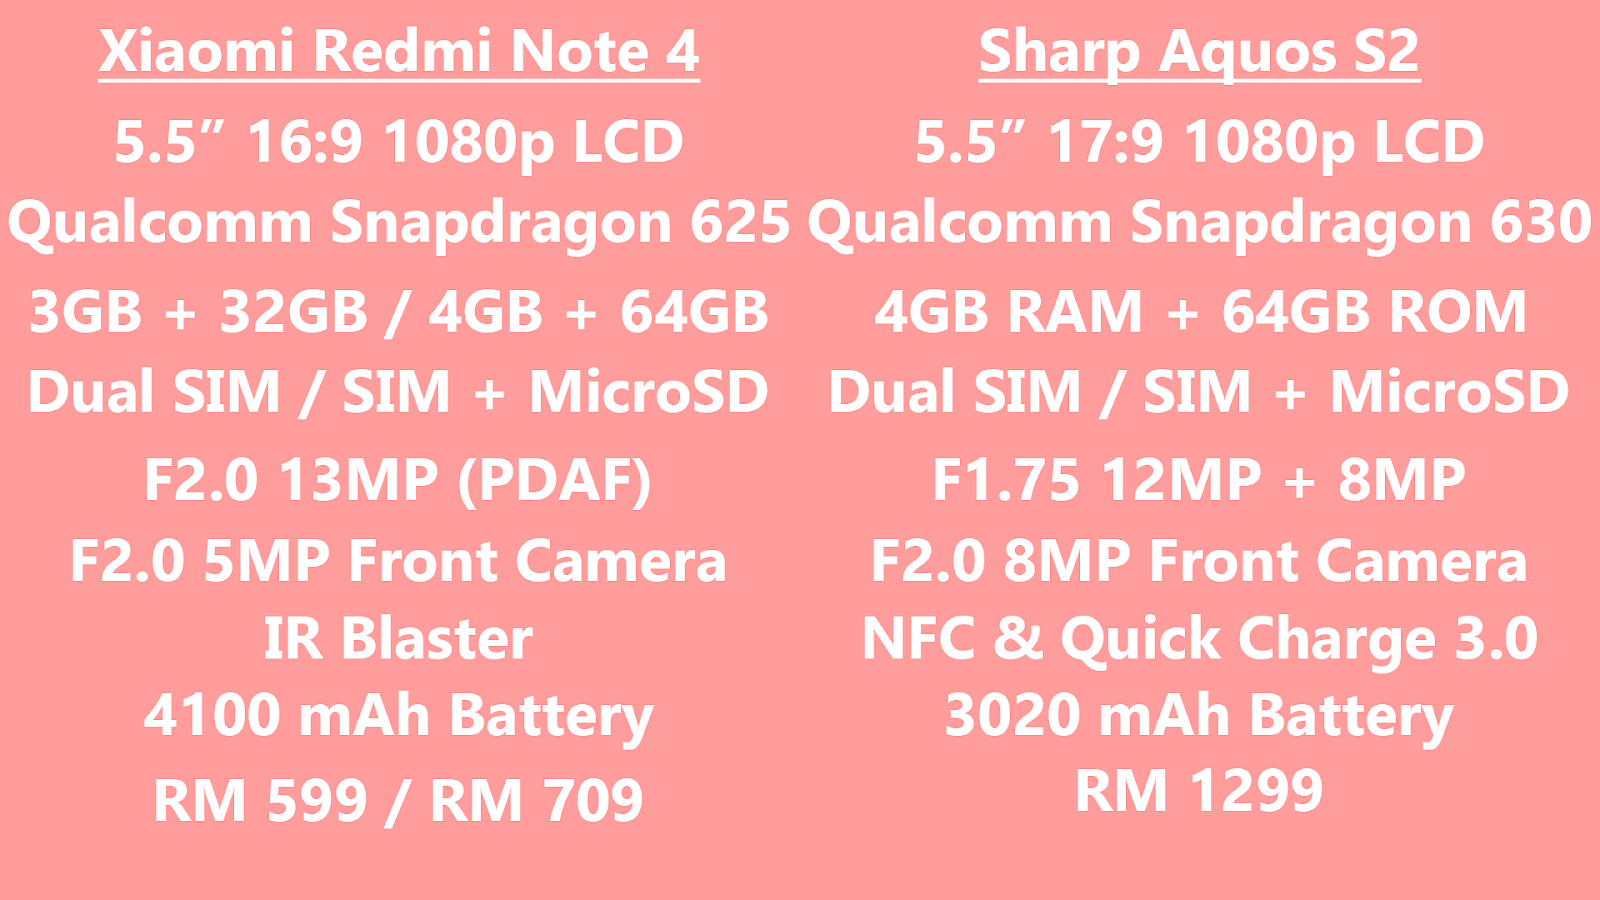 Sharp Aquos S2 Vs Xiaomi Redmi Note 4 Comparison Is Full View Smile Tempered Glass Note4x Clear Uses A Metal Frame With Plastic Back For The Qualcomm Snapdragon 630 Version Combination Of And